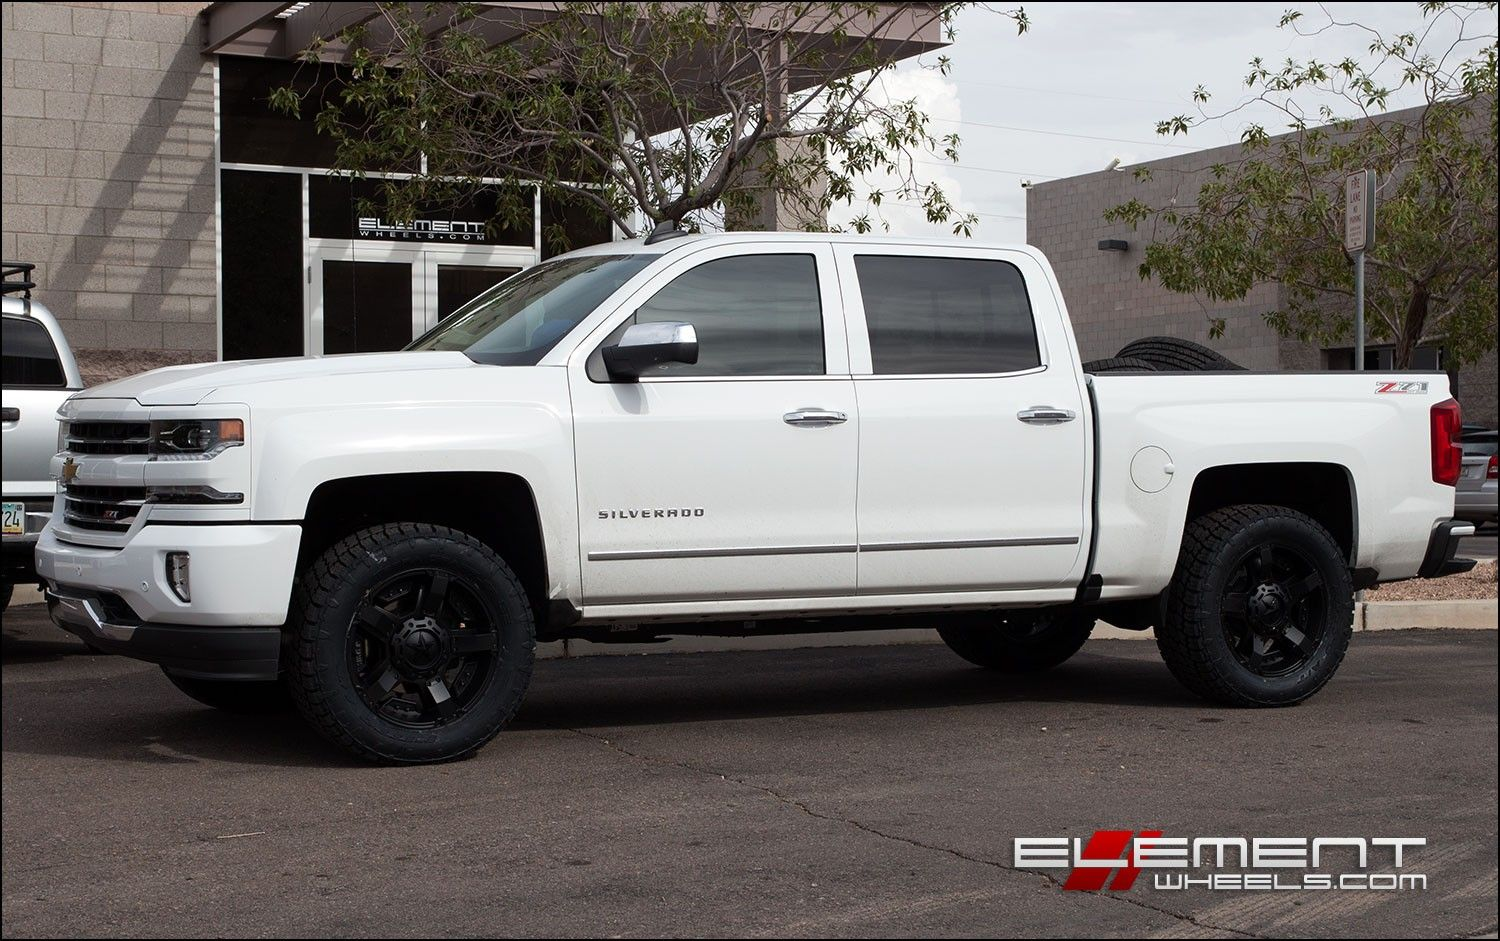 All Chevy chevy 1500 wheels Black Wheels for Silverado 1500 | Wheels - Tires Gallery ...